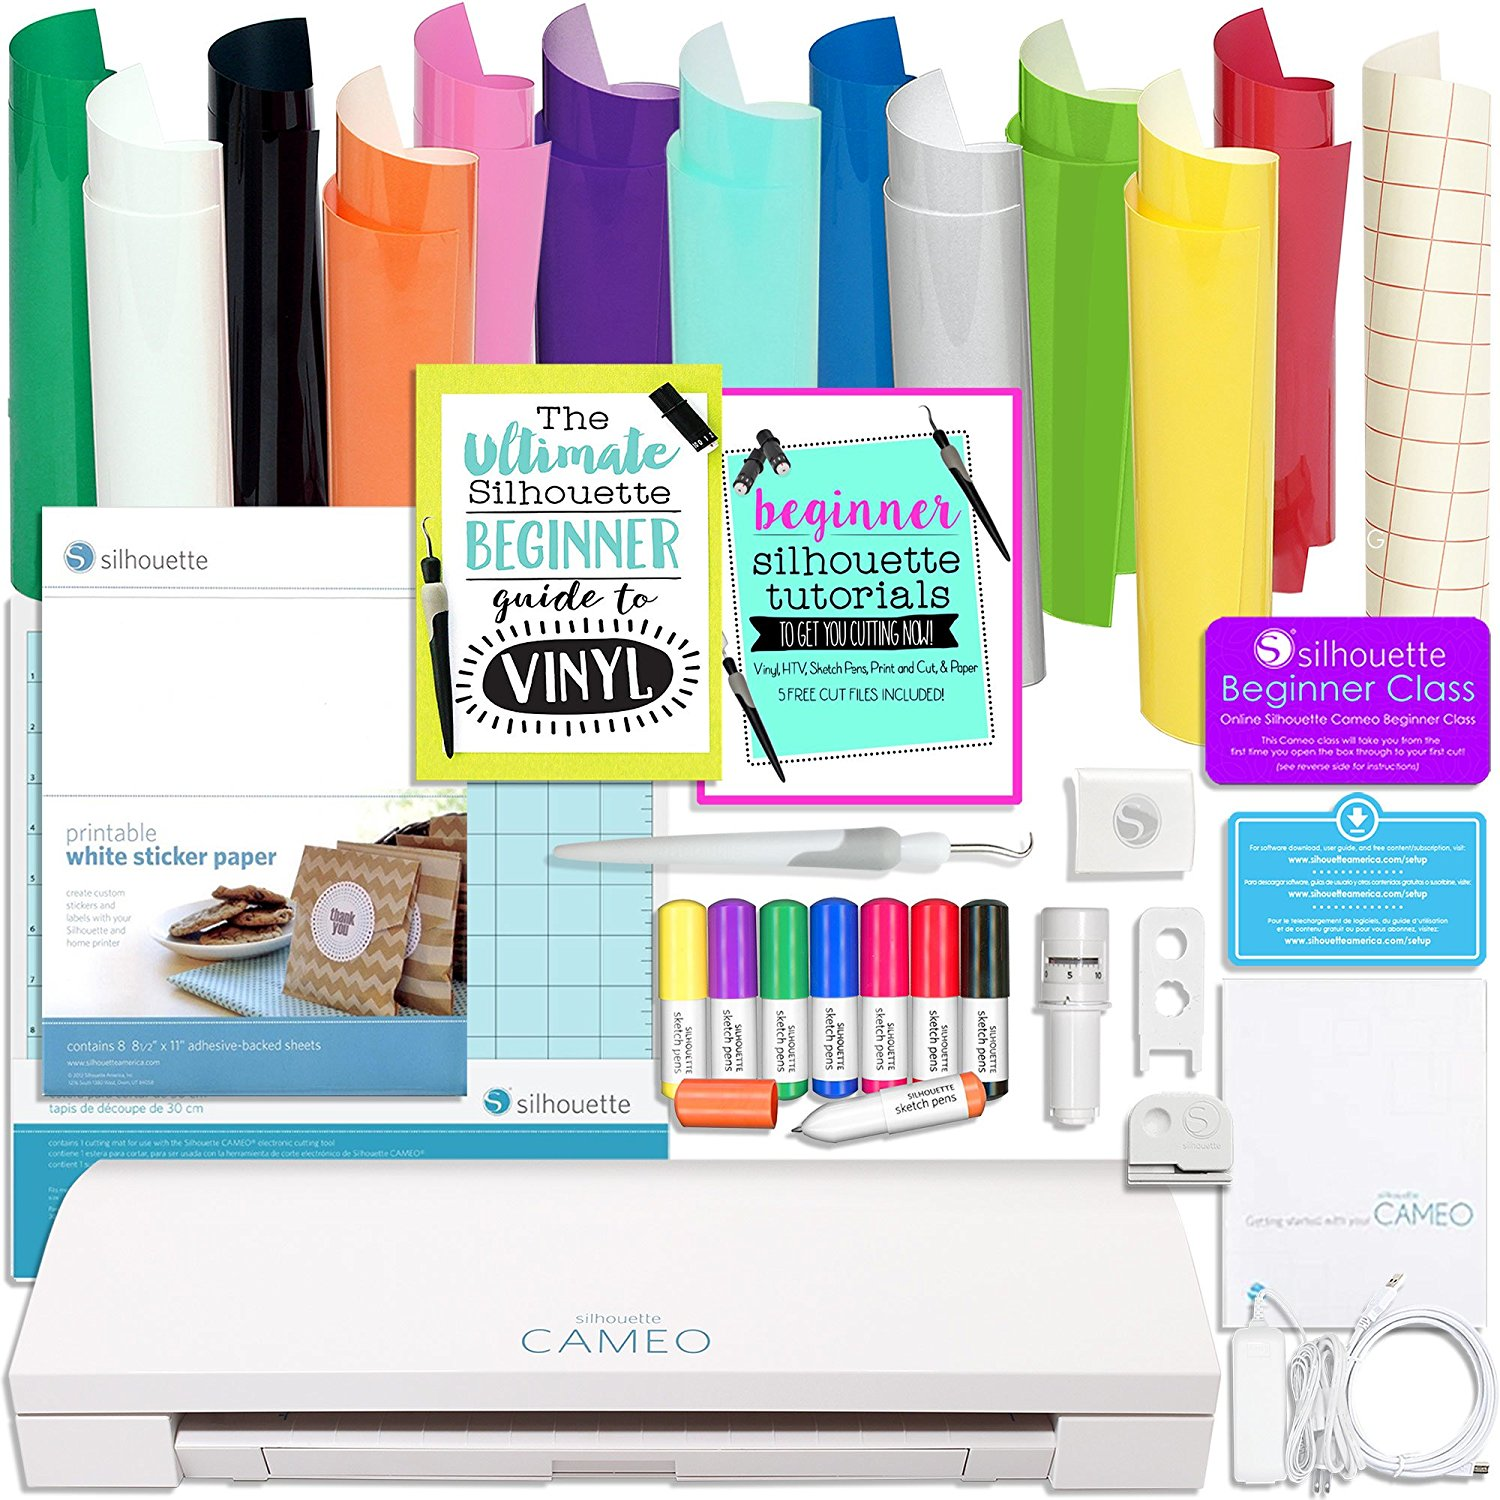 Silhouette Cameo 3 Bluetooth Bundle with Oracal 651 Vinyl, Sketch Pens, Sticker Paper, Guide Books, and More